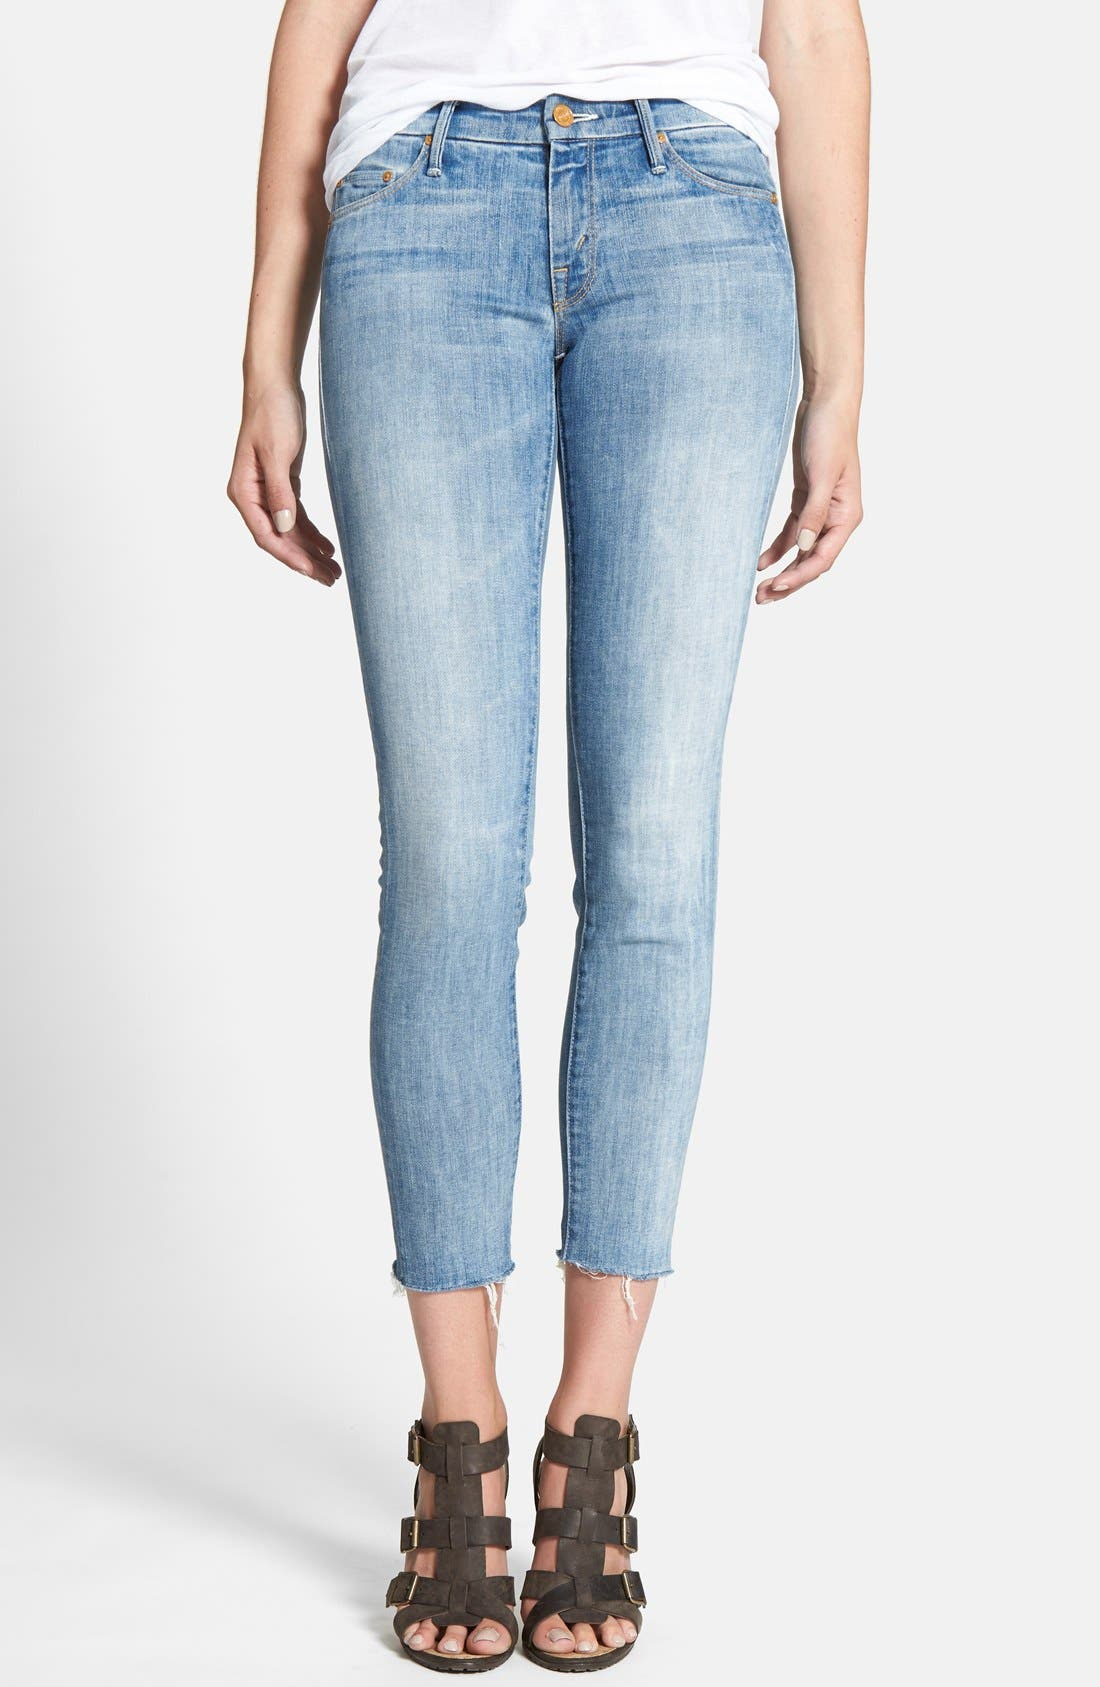 Alternate Image 1 Selected - MOTHER 'The Looker' Frayed Crop Skinny Jeans (Spreading Rumors)